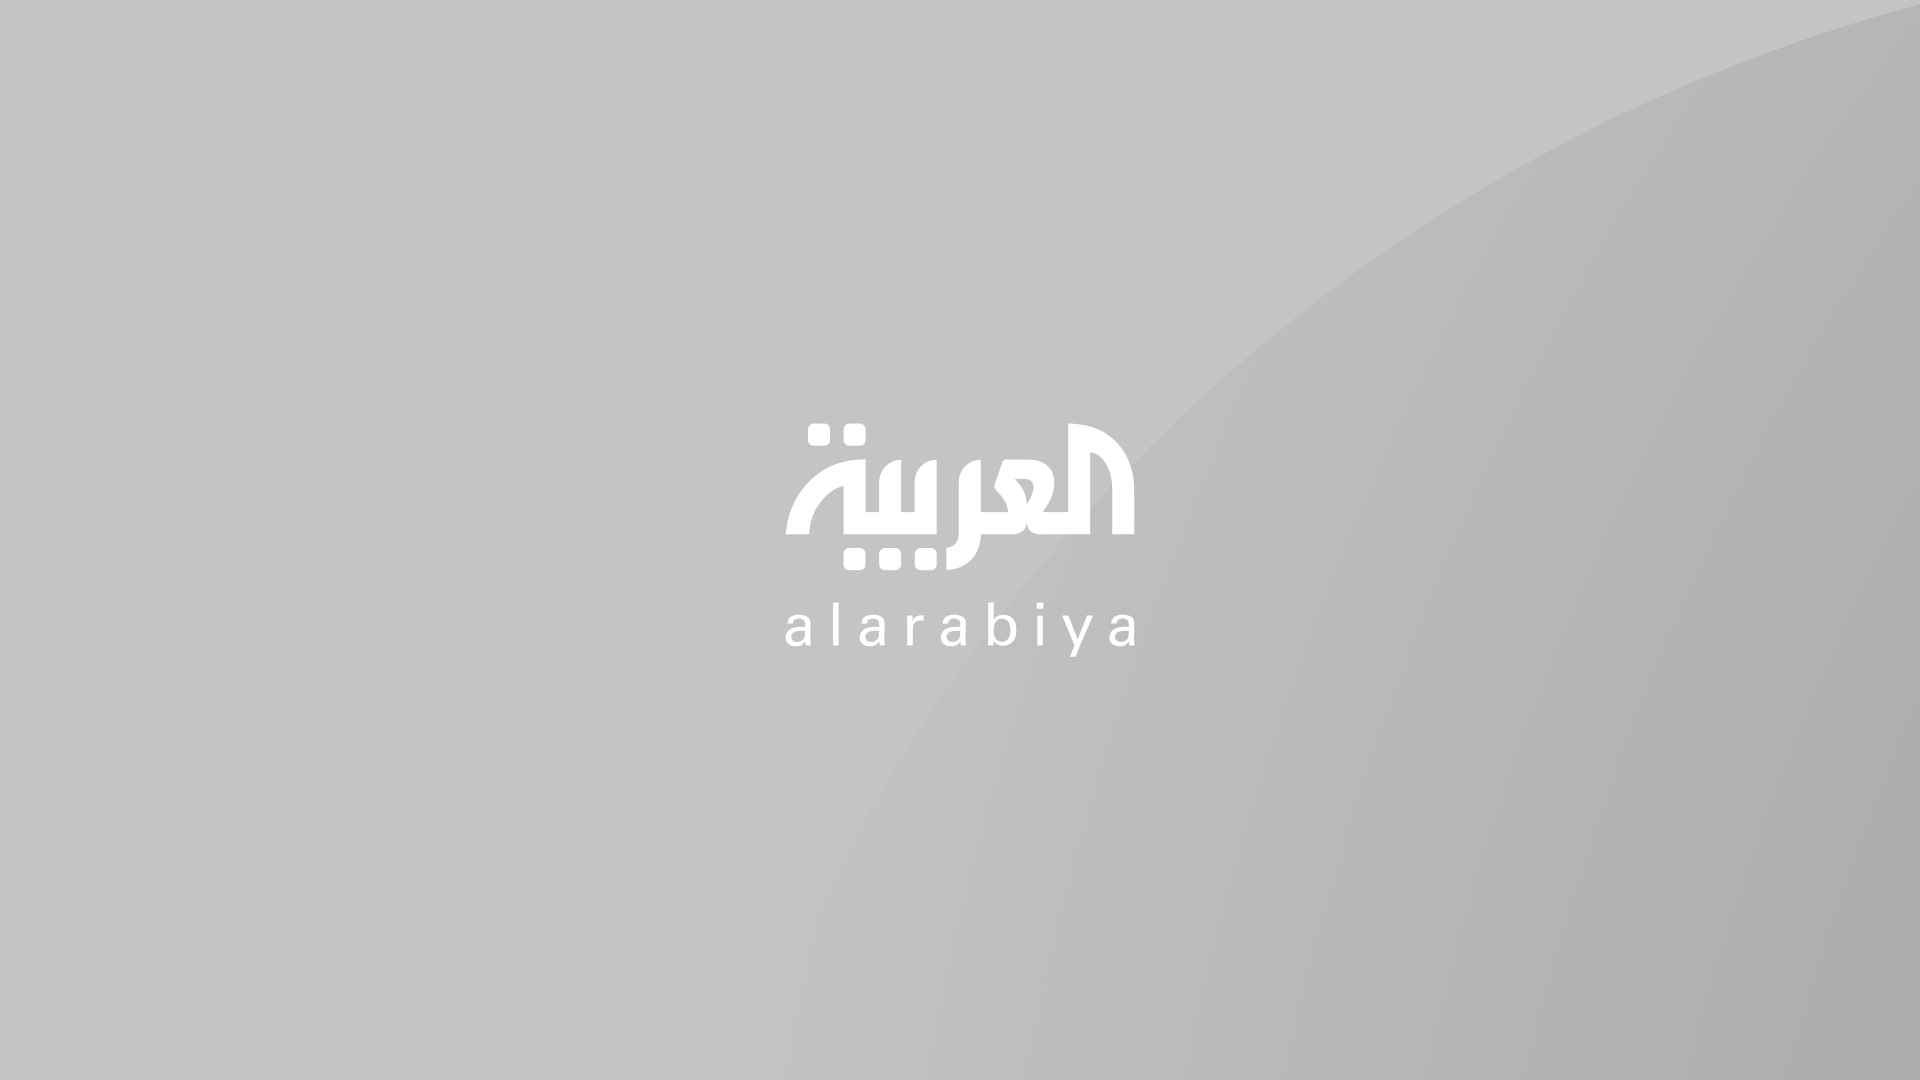 Refugee crisis calls for aid rethink, Al Arabiya WEF panel hears